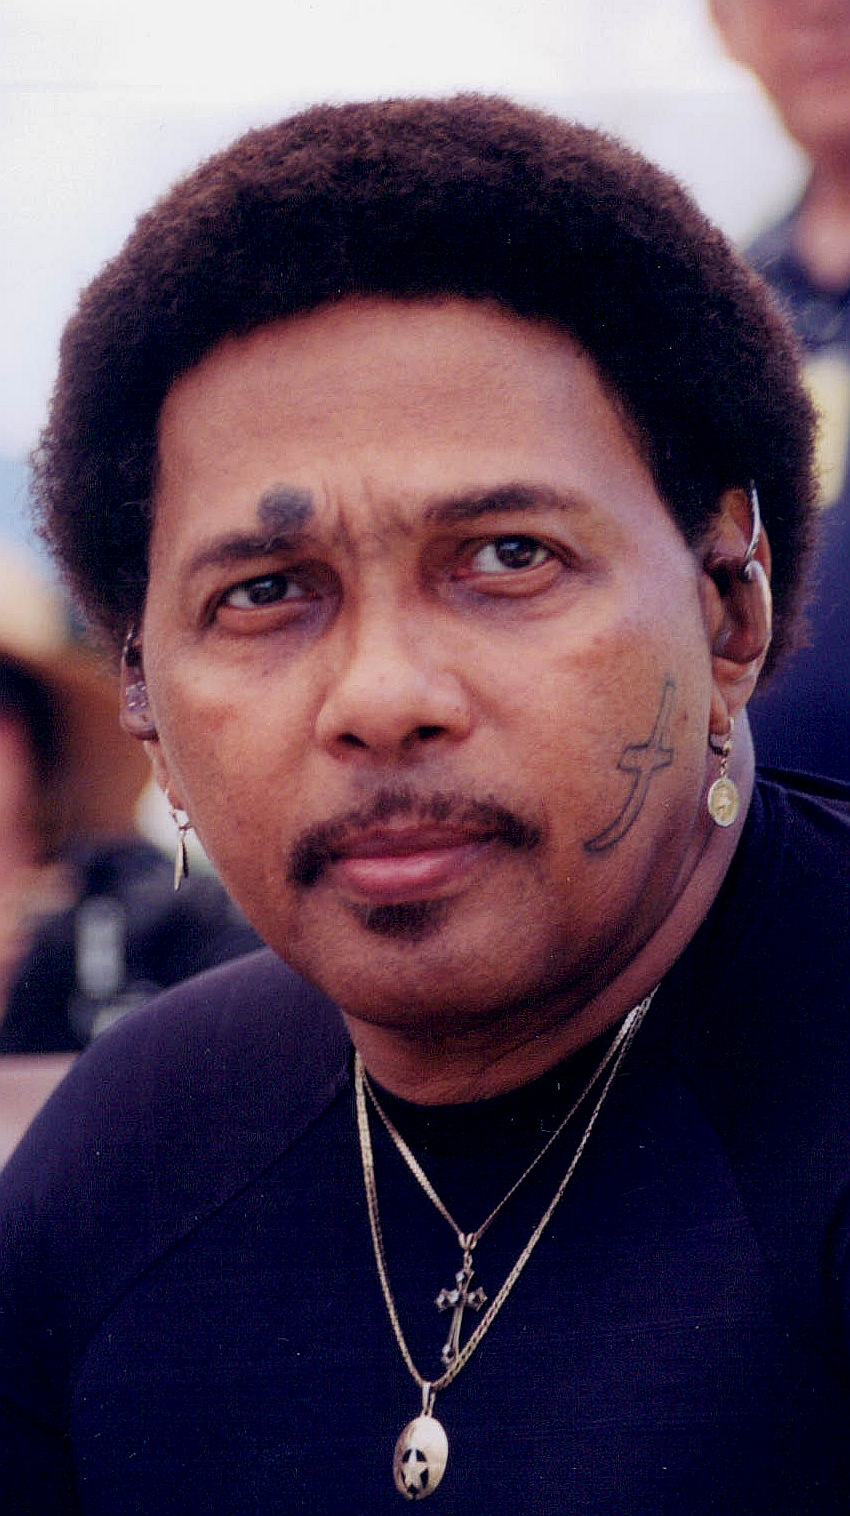 The 78-year old son of father (?) and mother(?) Aaron Neville in 2019 photo. Aaron Neville earned a  million dollar salary - leaving the net worth at 5 million in 2019